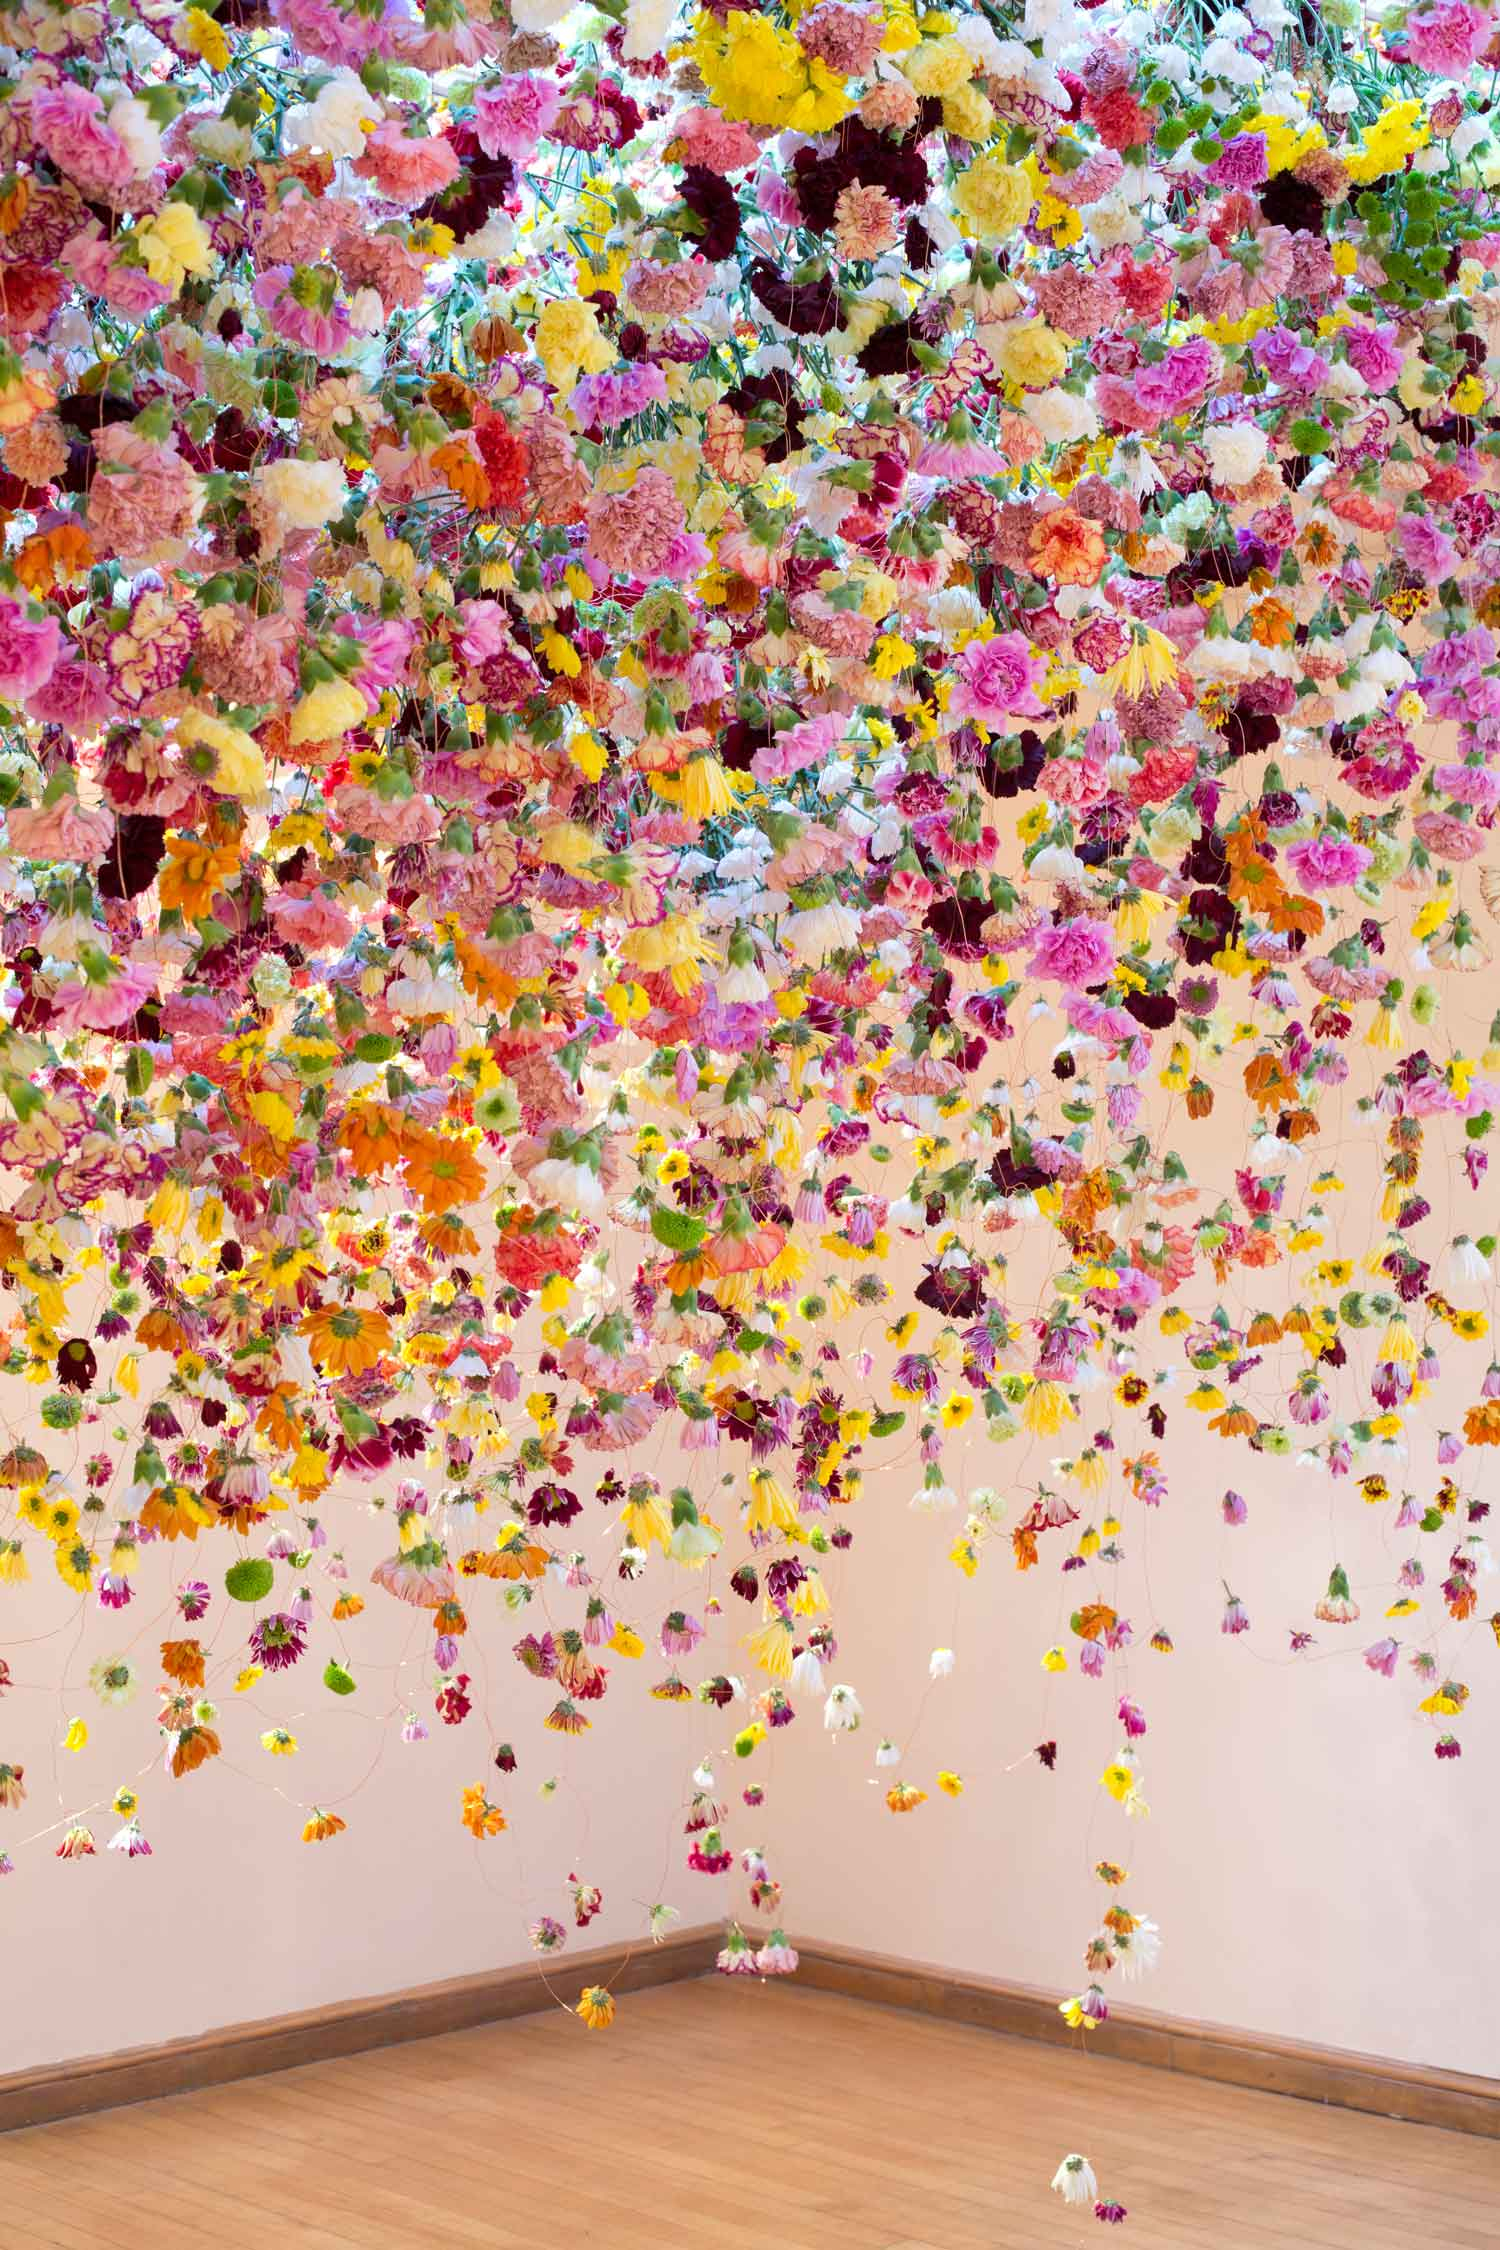 Spectacular Floral Installations by Rebecca Louise Law.